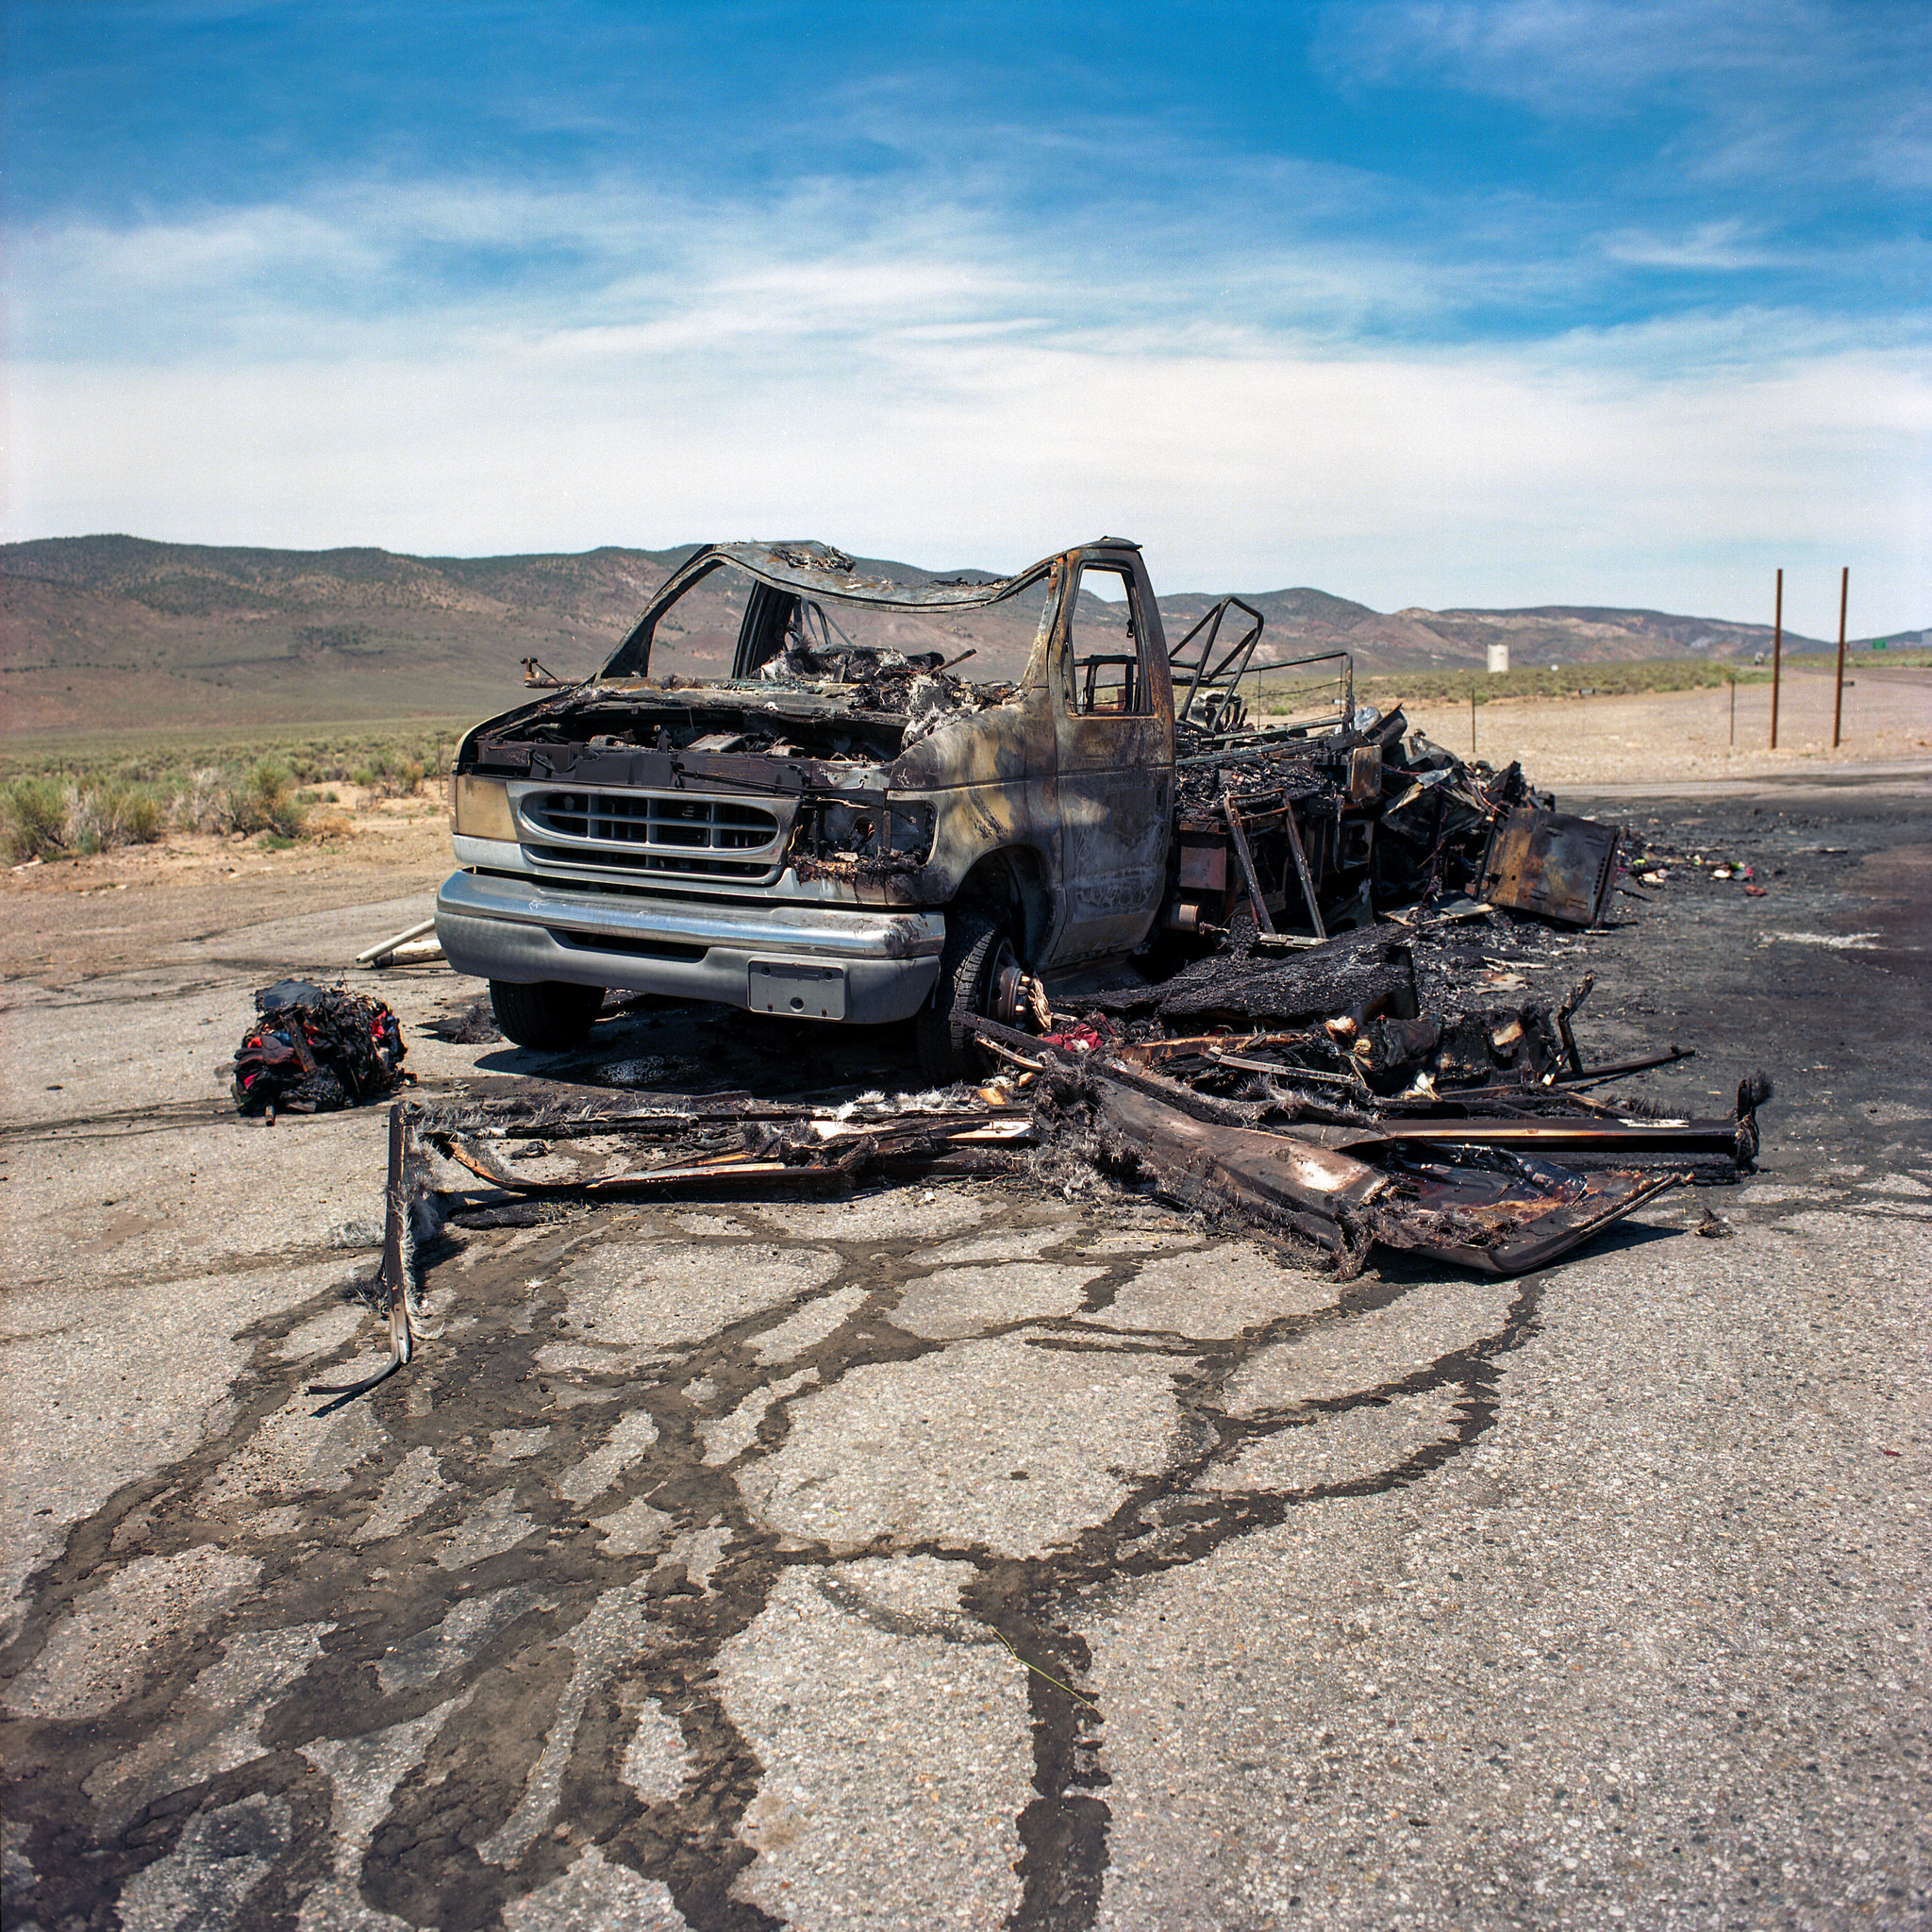 A burnt out van on the highway in Nevada.